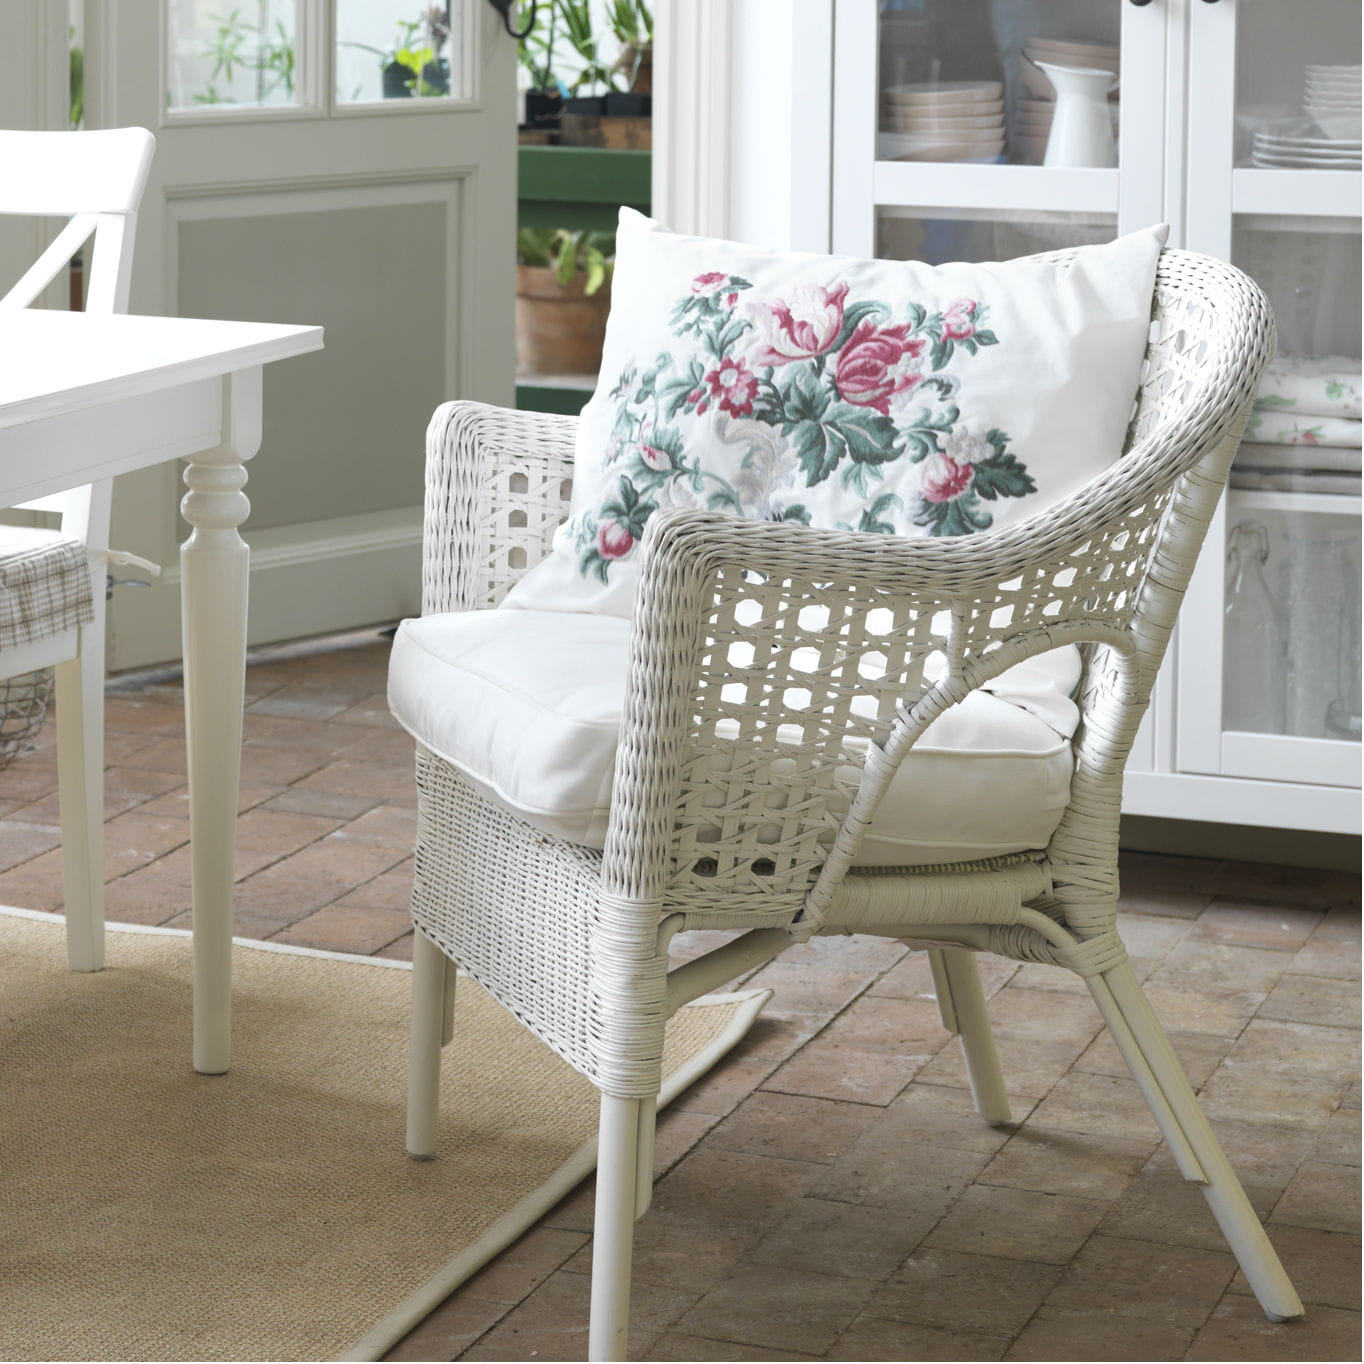 Ikea fauteuil osier blanc table de lit for Petit salon en rotin